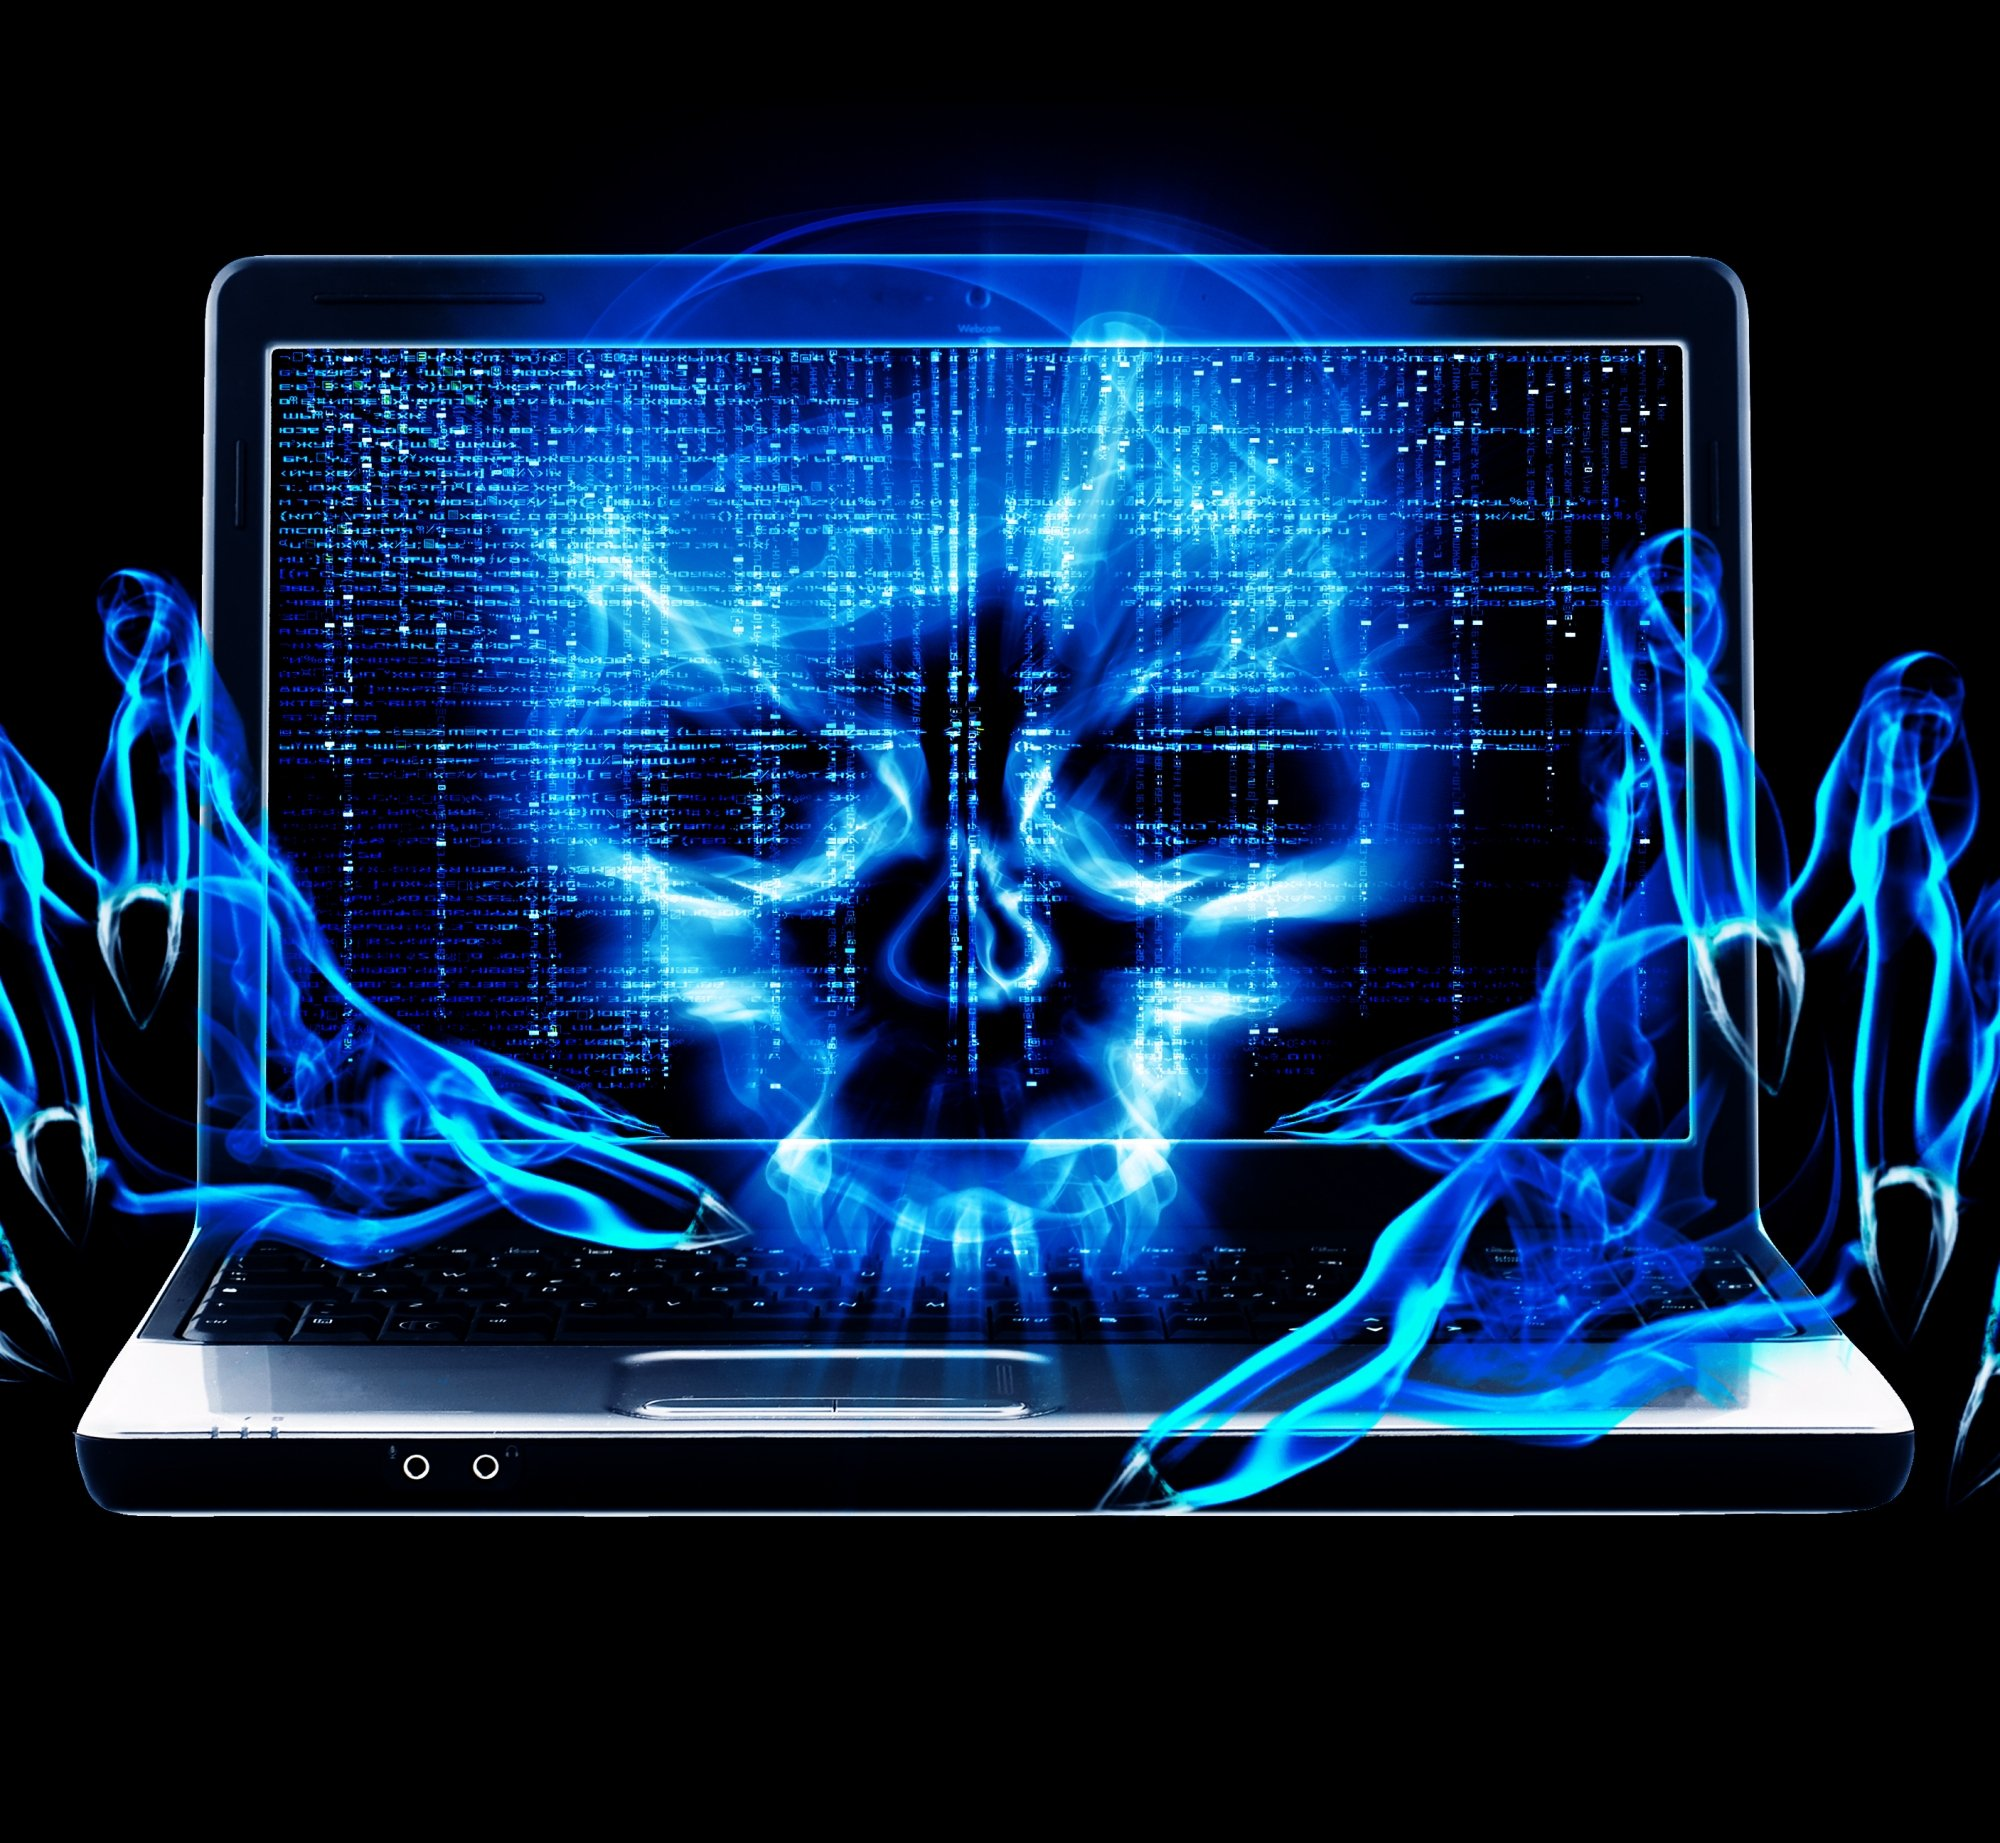 cyber attacks rise dont let your business hackers paradise 1